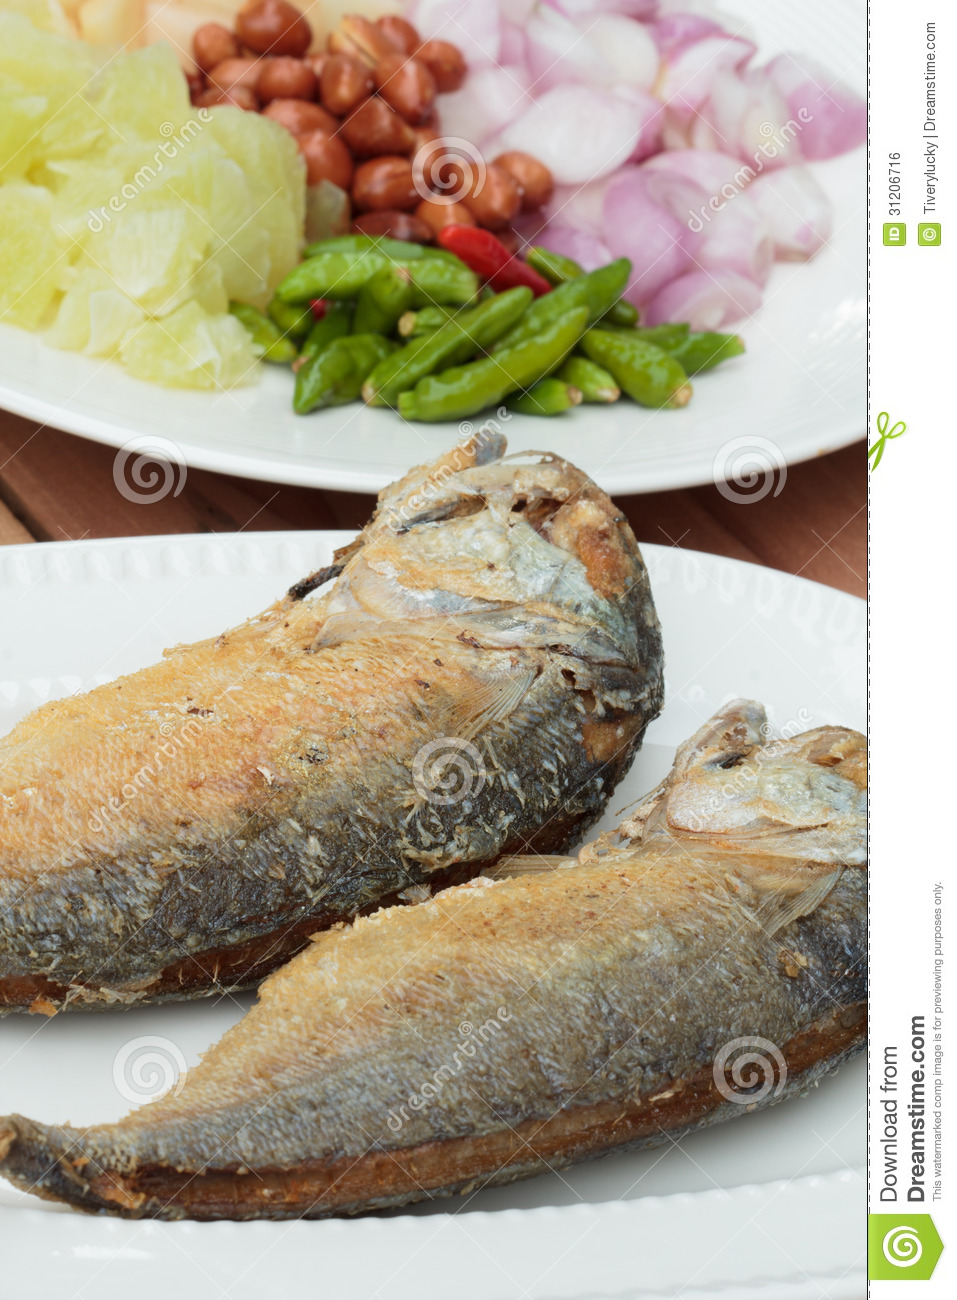 Fried fish royalty free stock image image 31206716 for Side dishes for fried fish